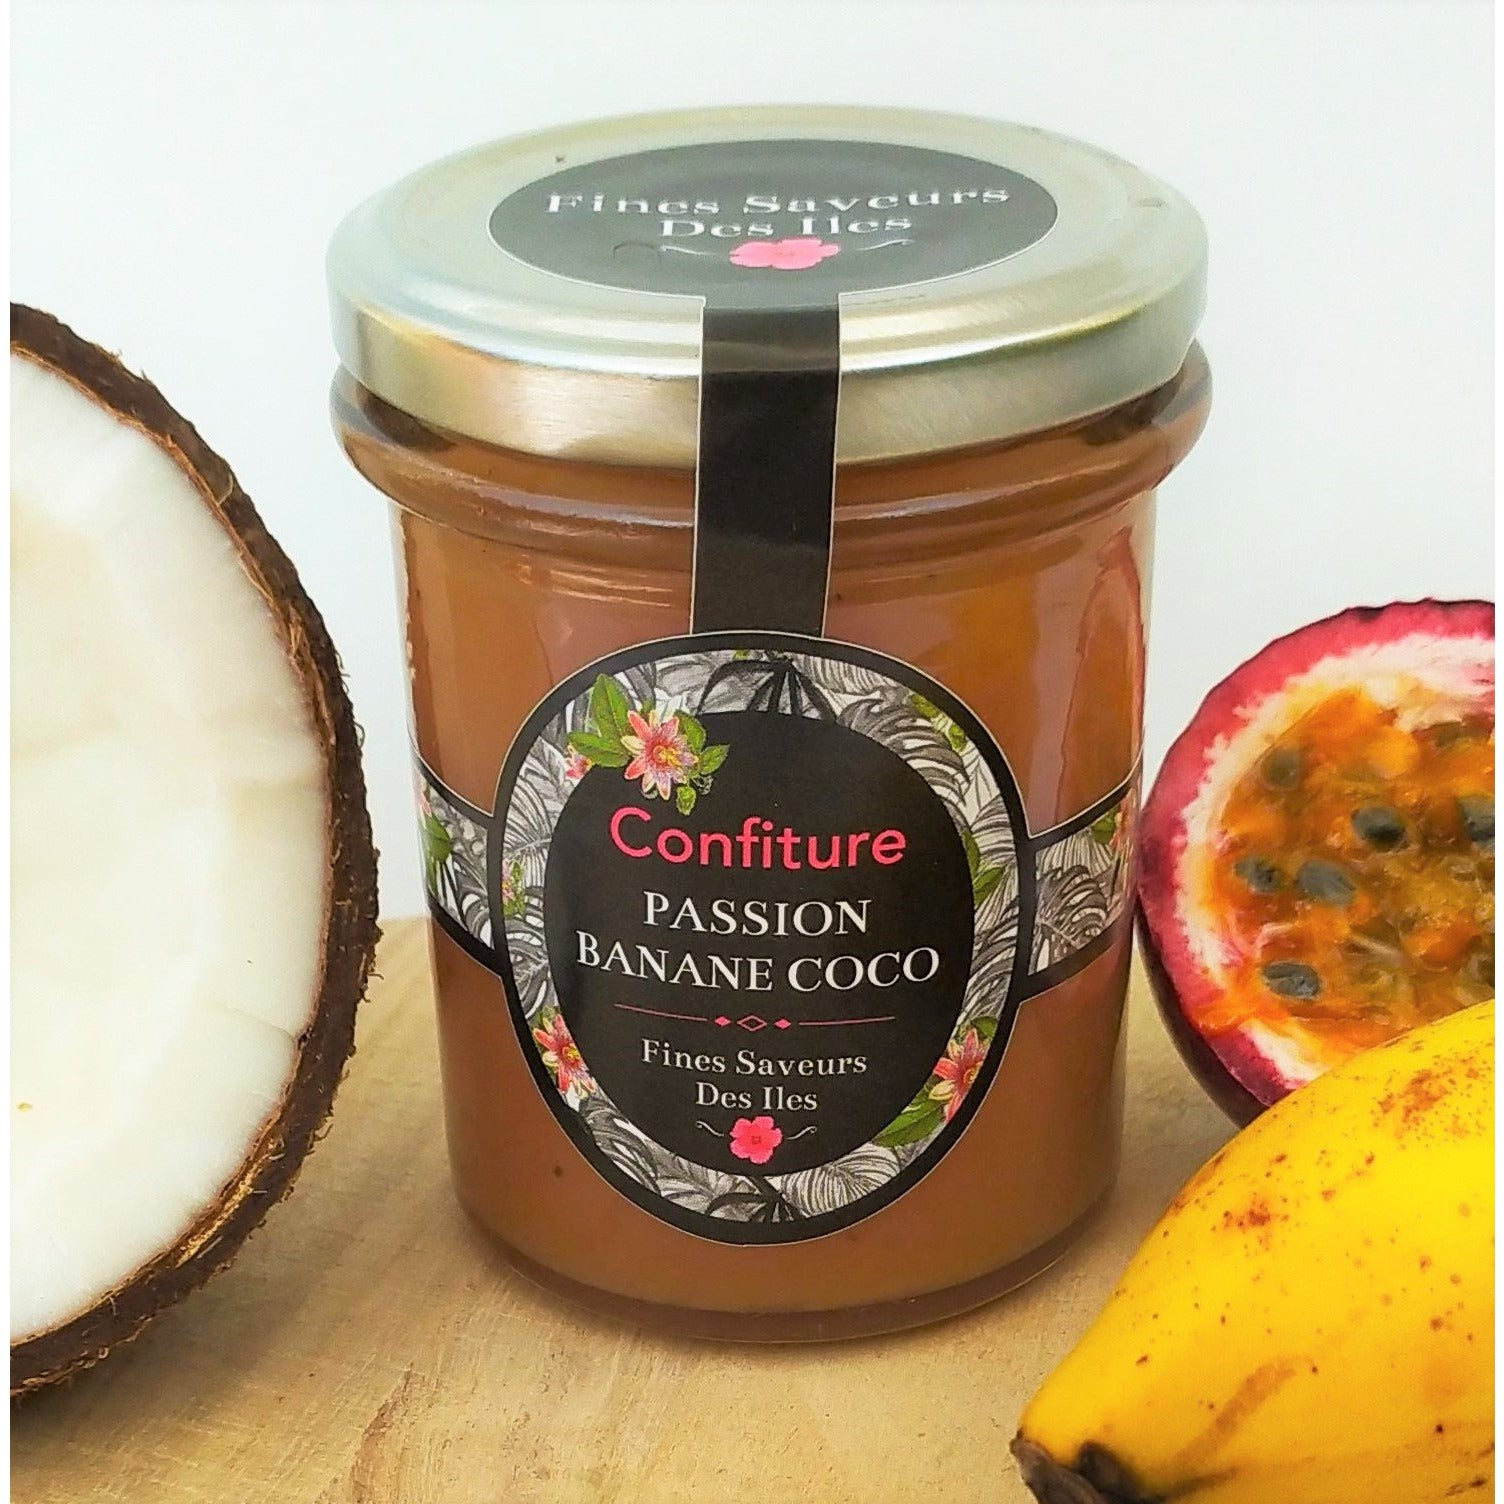 Confiture Passion Banane Coco